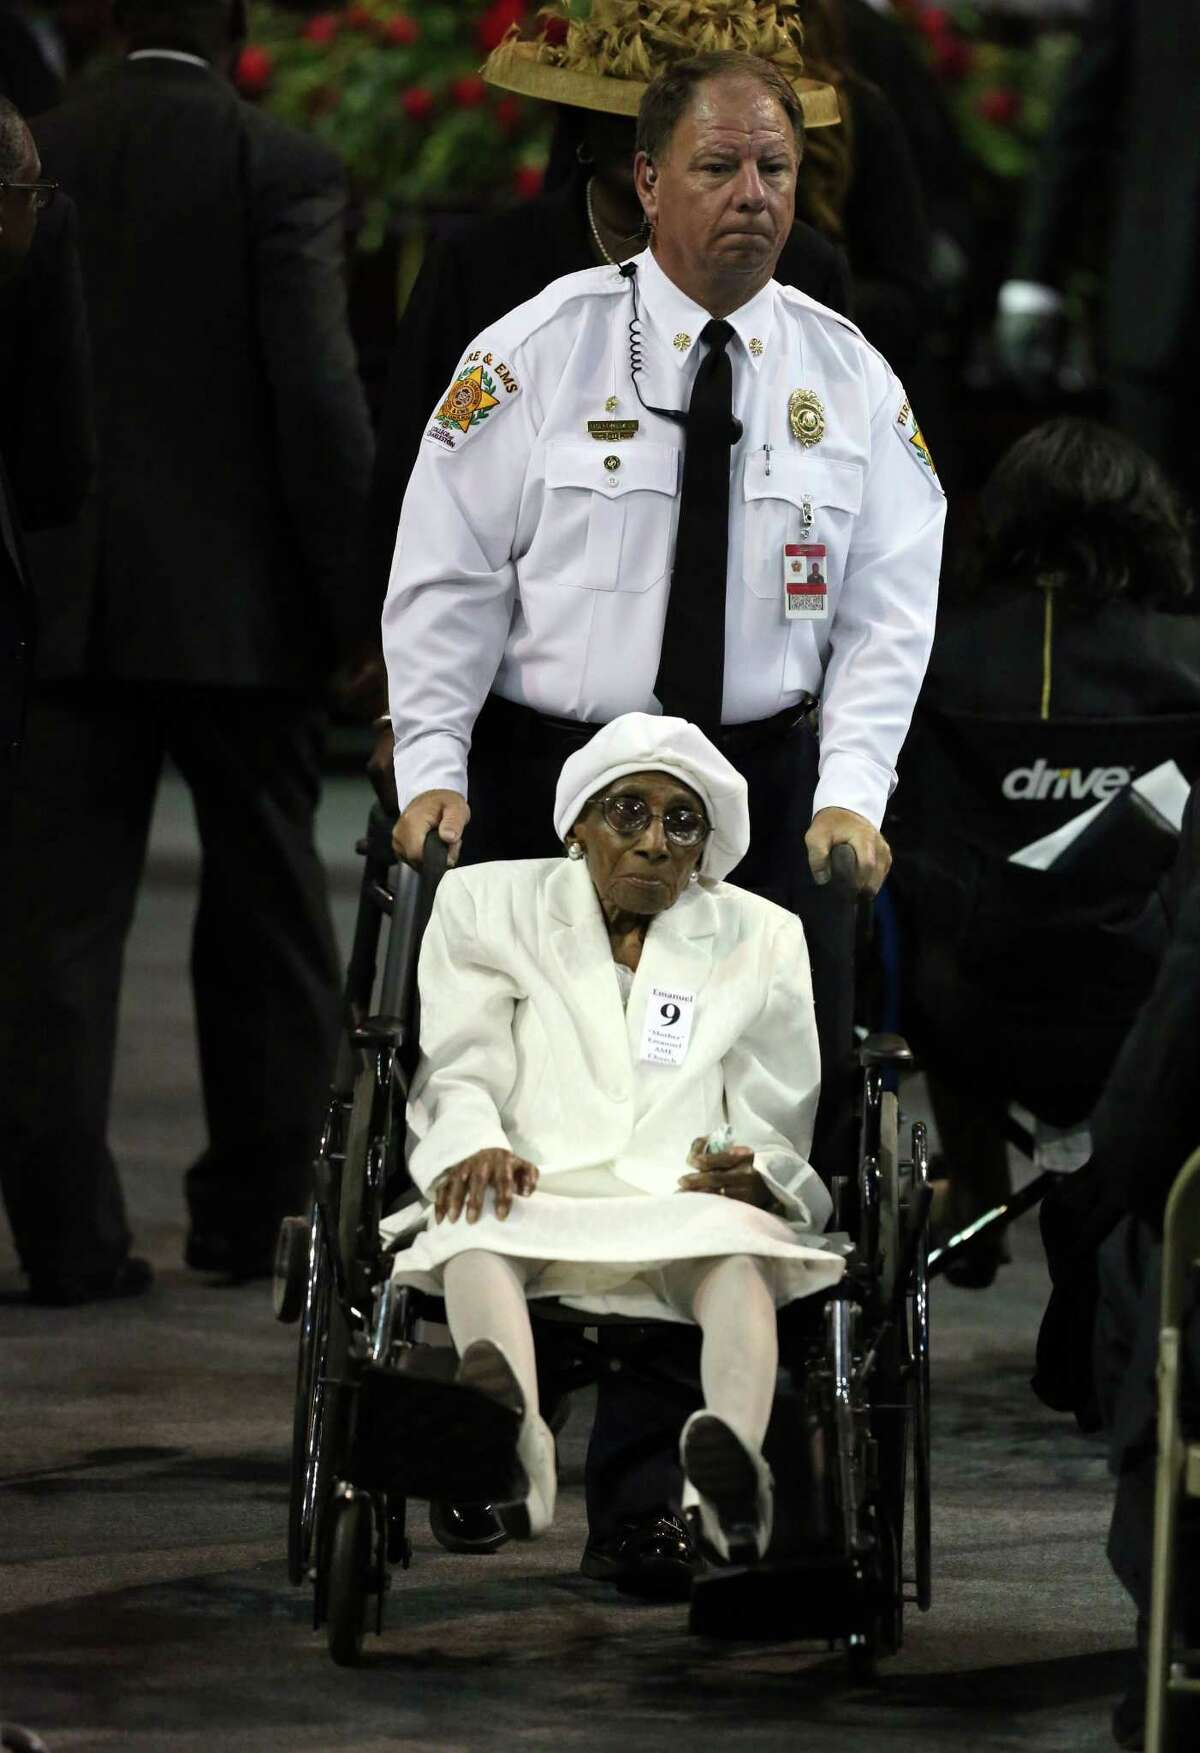 A woman is assisted into the arena before the funeral service for Sen. Clementa Pinckney, Friday, June 26, 2015, in Charleston, S.C. President Barack Obama will deliver the eulogy at Pinckney's funeral Friday at College of Charleston's TD Arena near the Emanuel AME Church, the scene of last week's shooting. (Grace Beahm/The Post And Courier via AP)